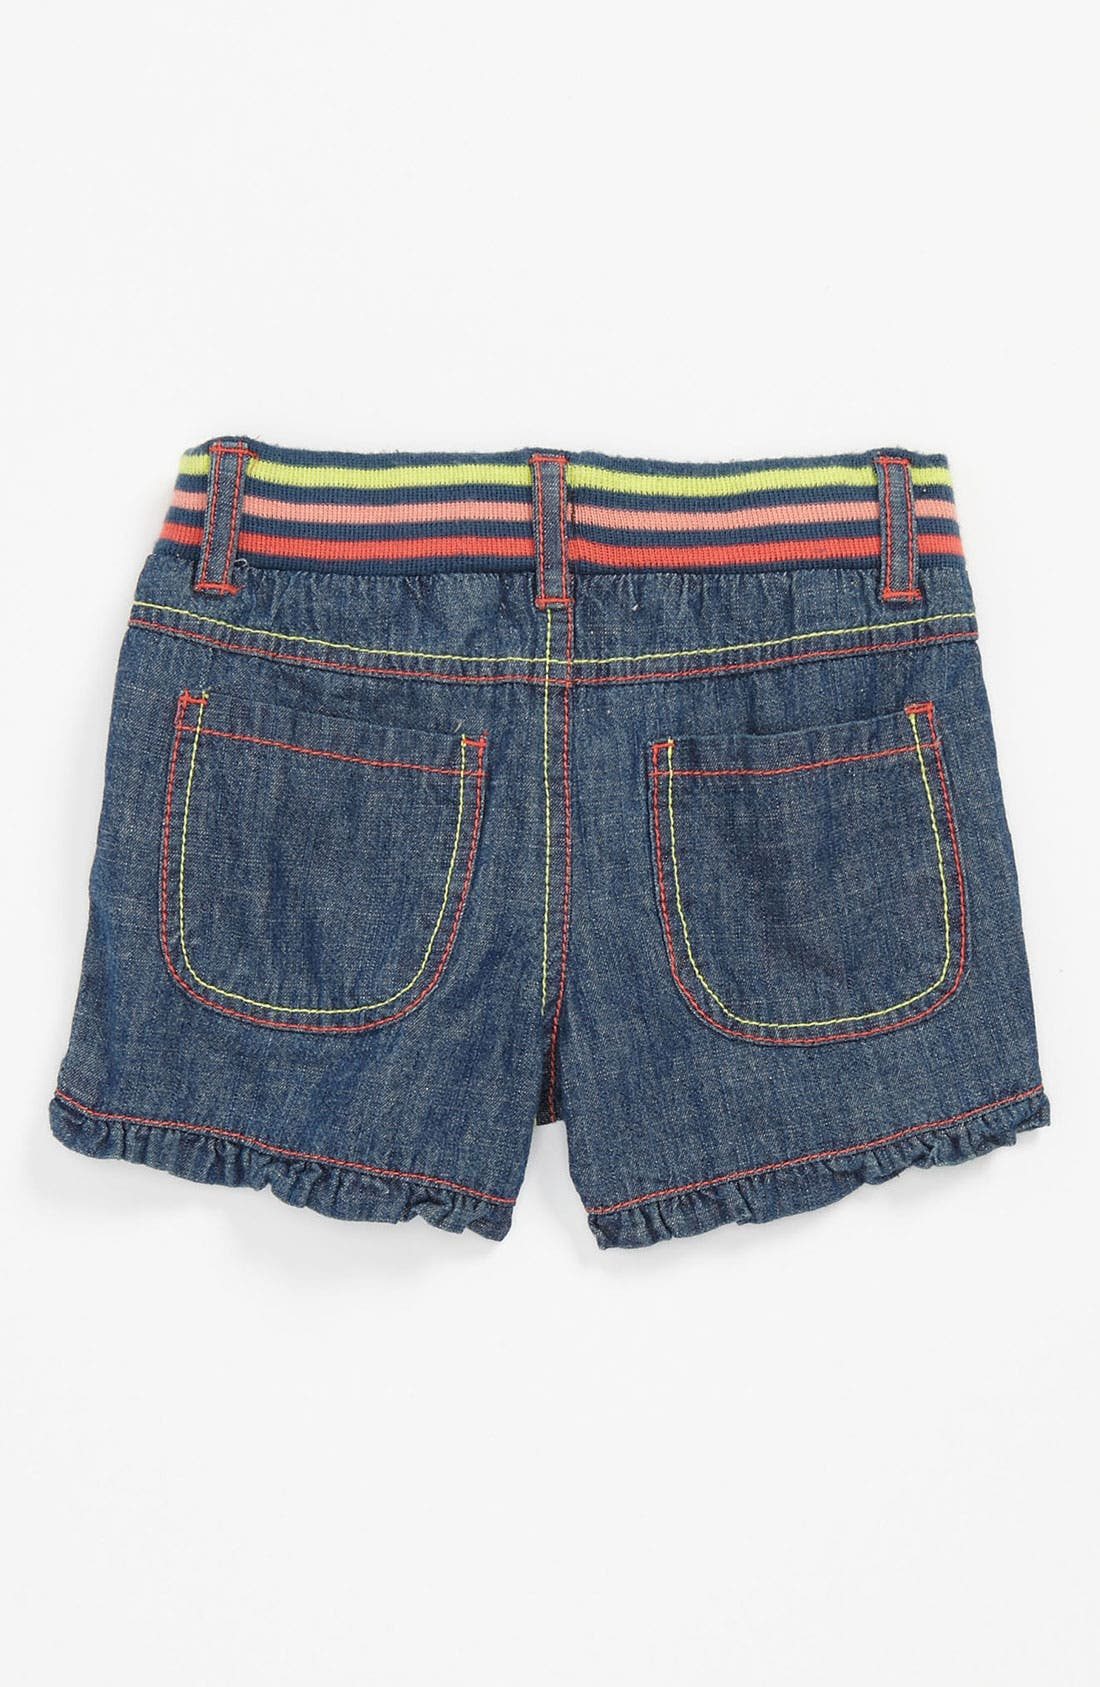 Alternate Image 1 Selected - Pumpkin Patch Denim Shorts (Toddler)